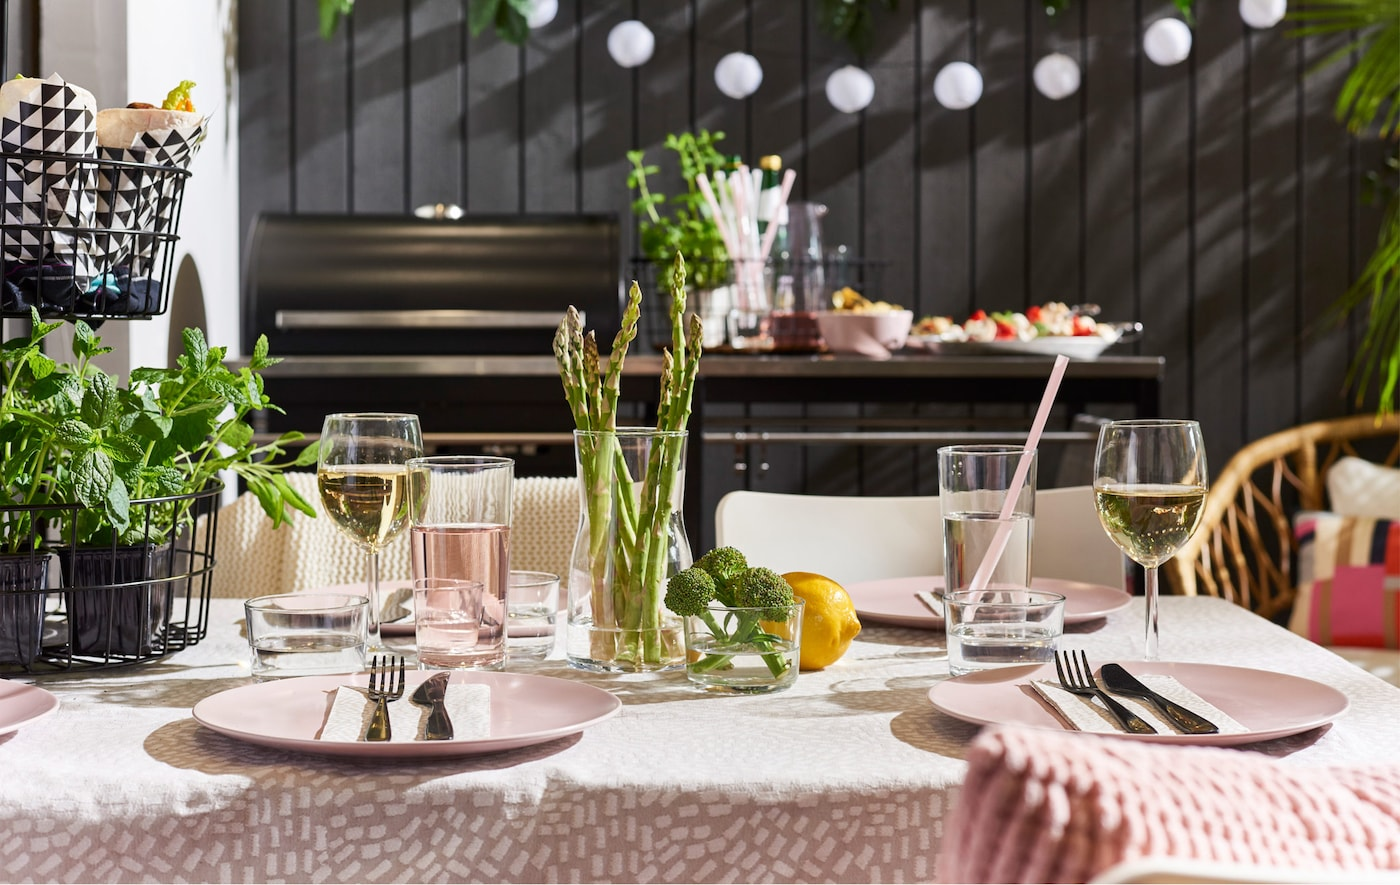 Organise a spontaneous and summary barbeque for your nearest and dearest! Use lighting to create instant cosiness. Try IKEA SOLVINDEN decoration for lighting!